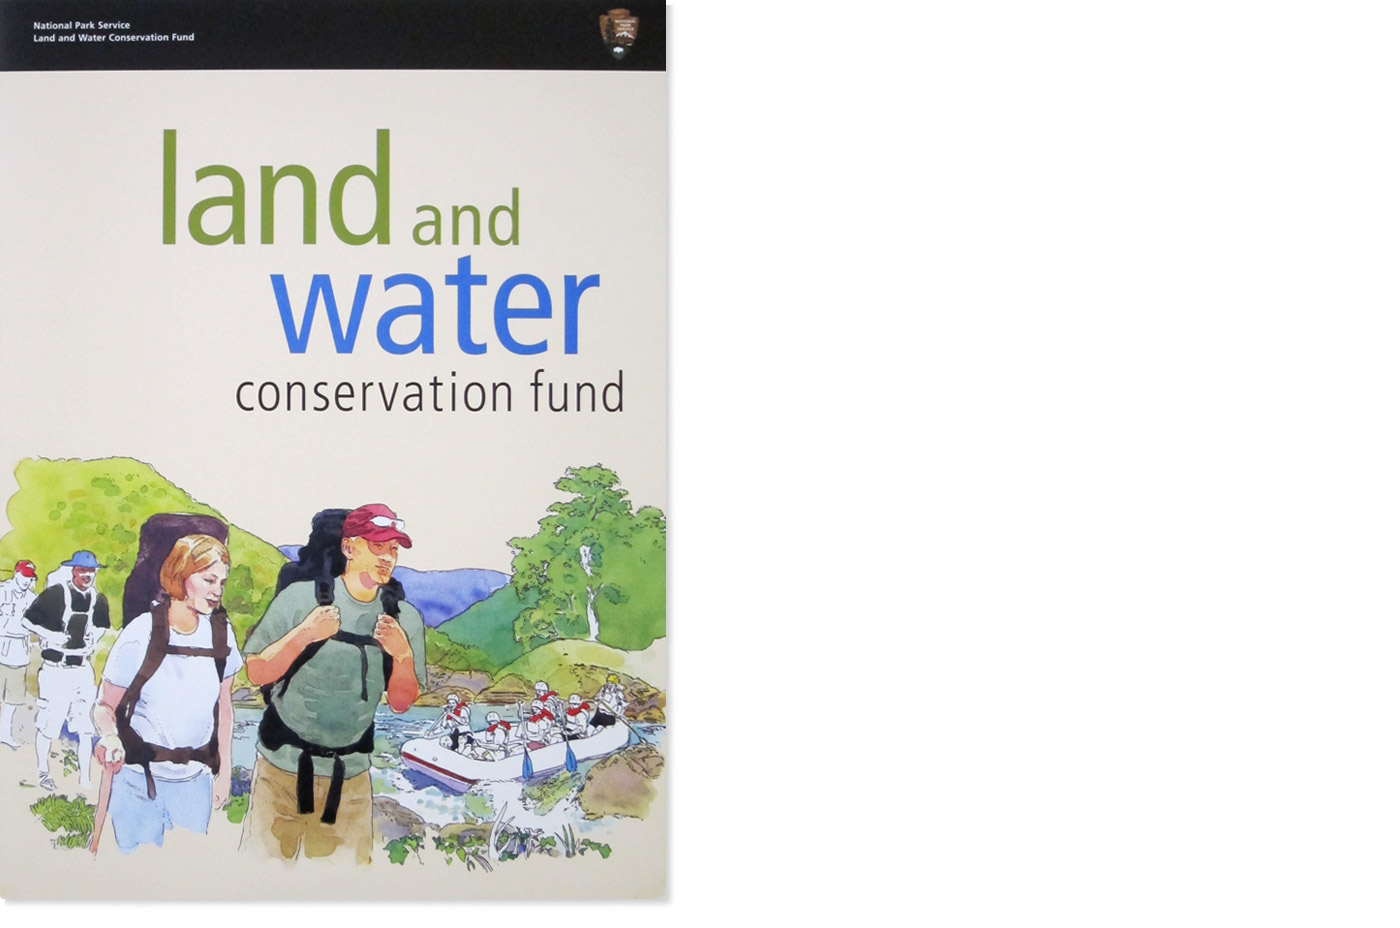 National Park Service Land and Water Conservation Fund